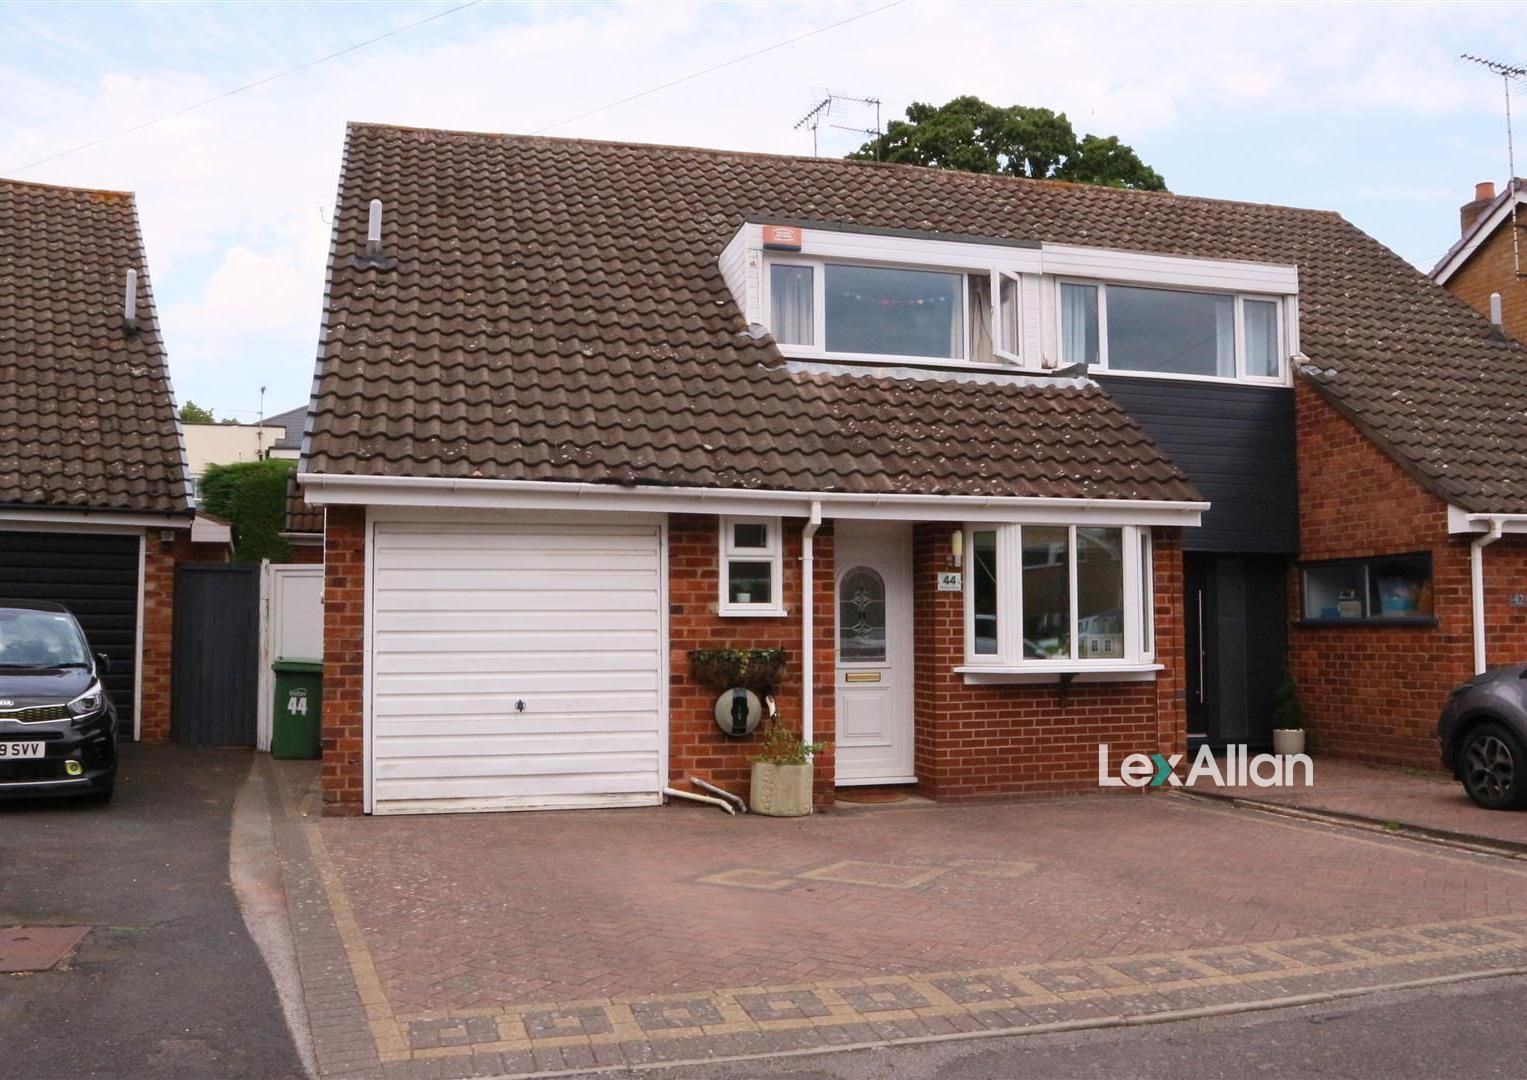 3 bed semi-detached for sale, DY9